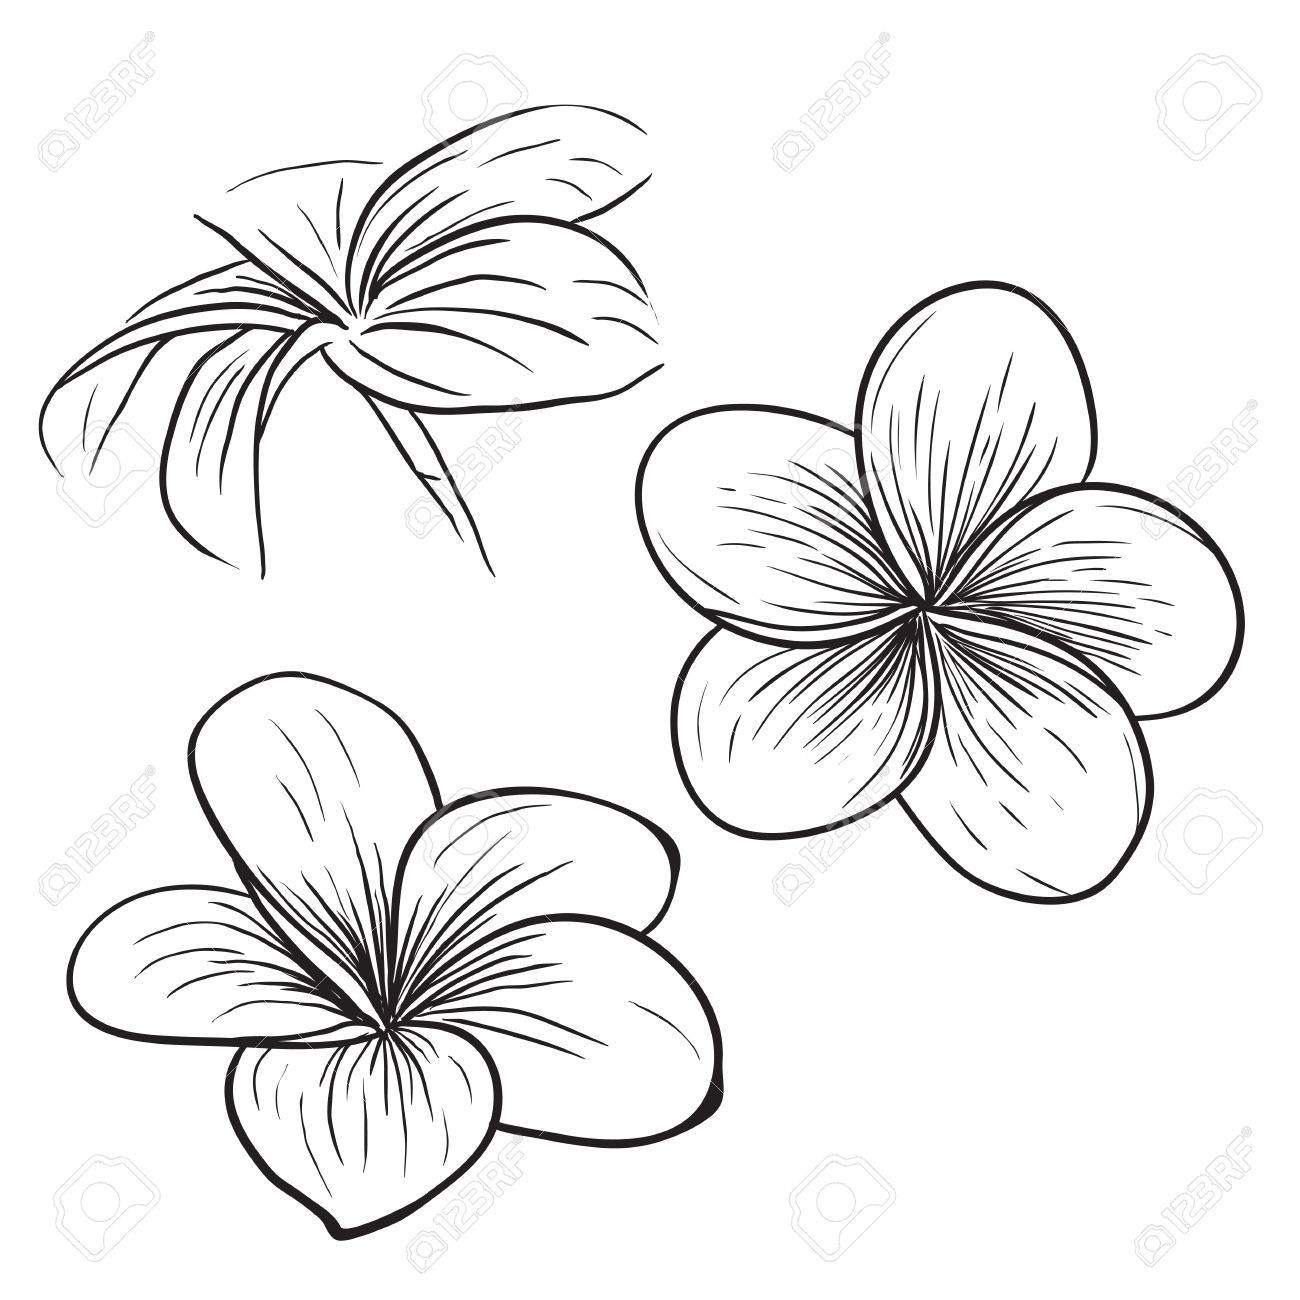 Tropical flower drawing geccetackletarts tropical flower drawing mightylinksfo